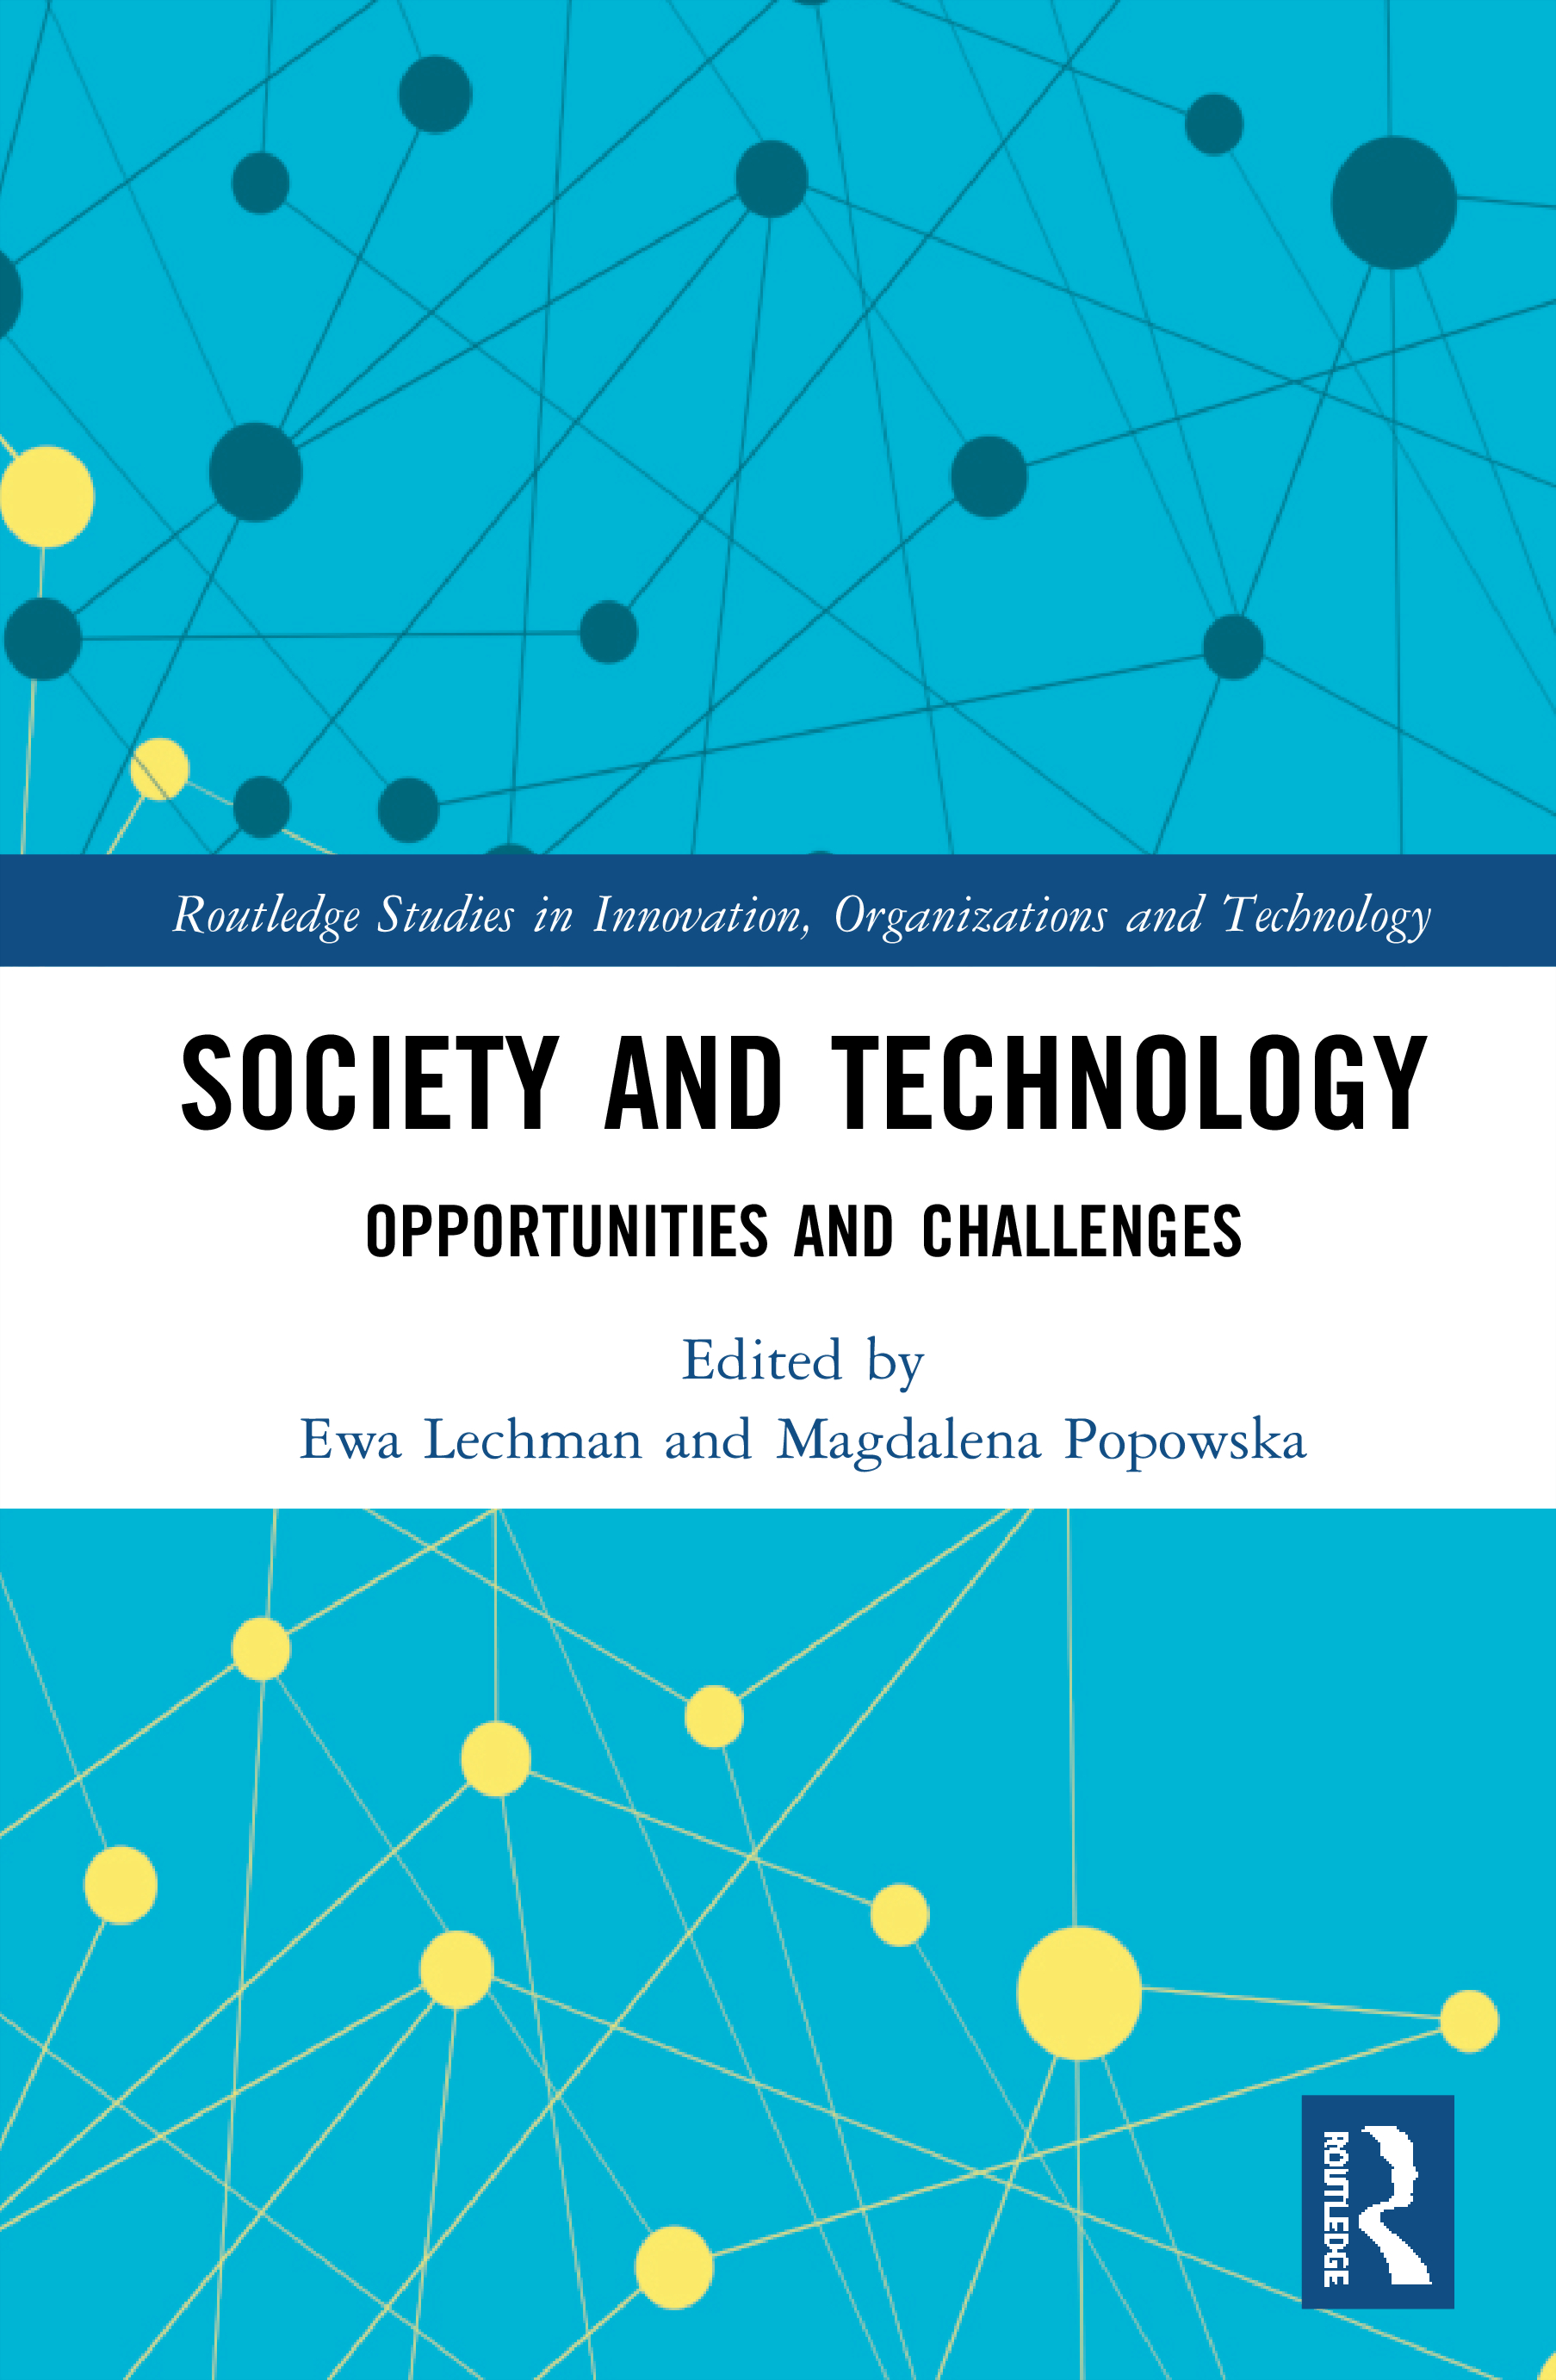 Society and Technology: Opportunities and Challenges book cover